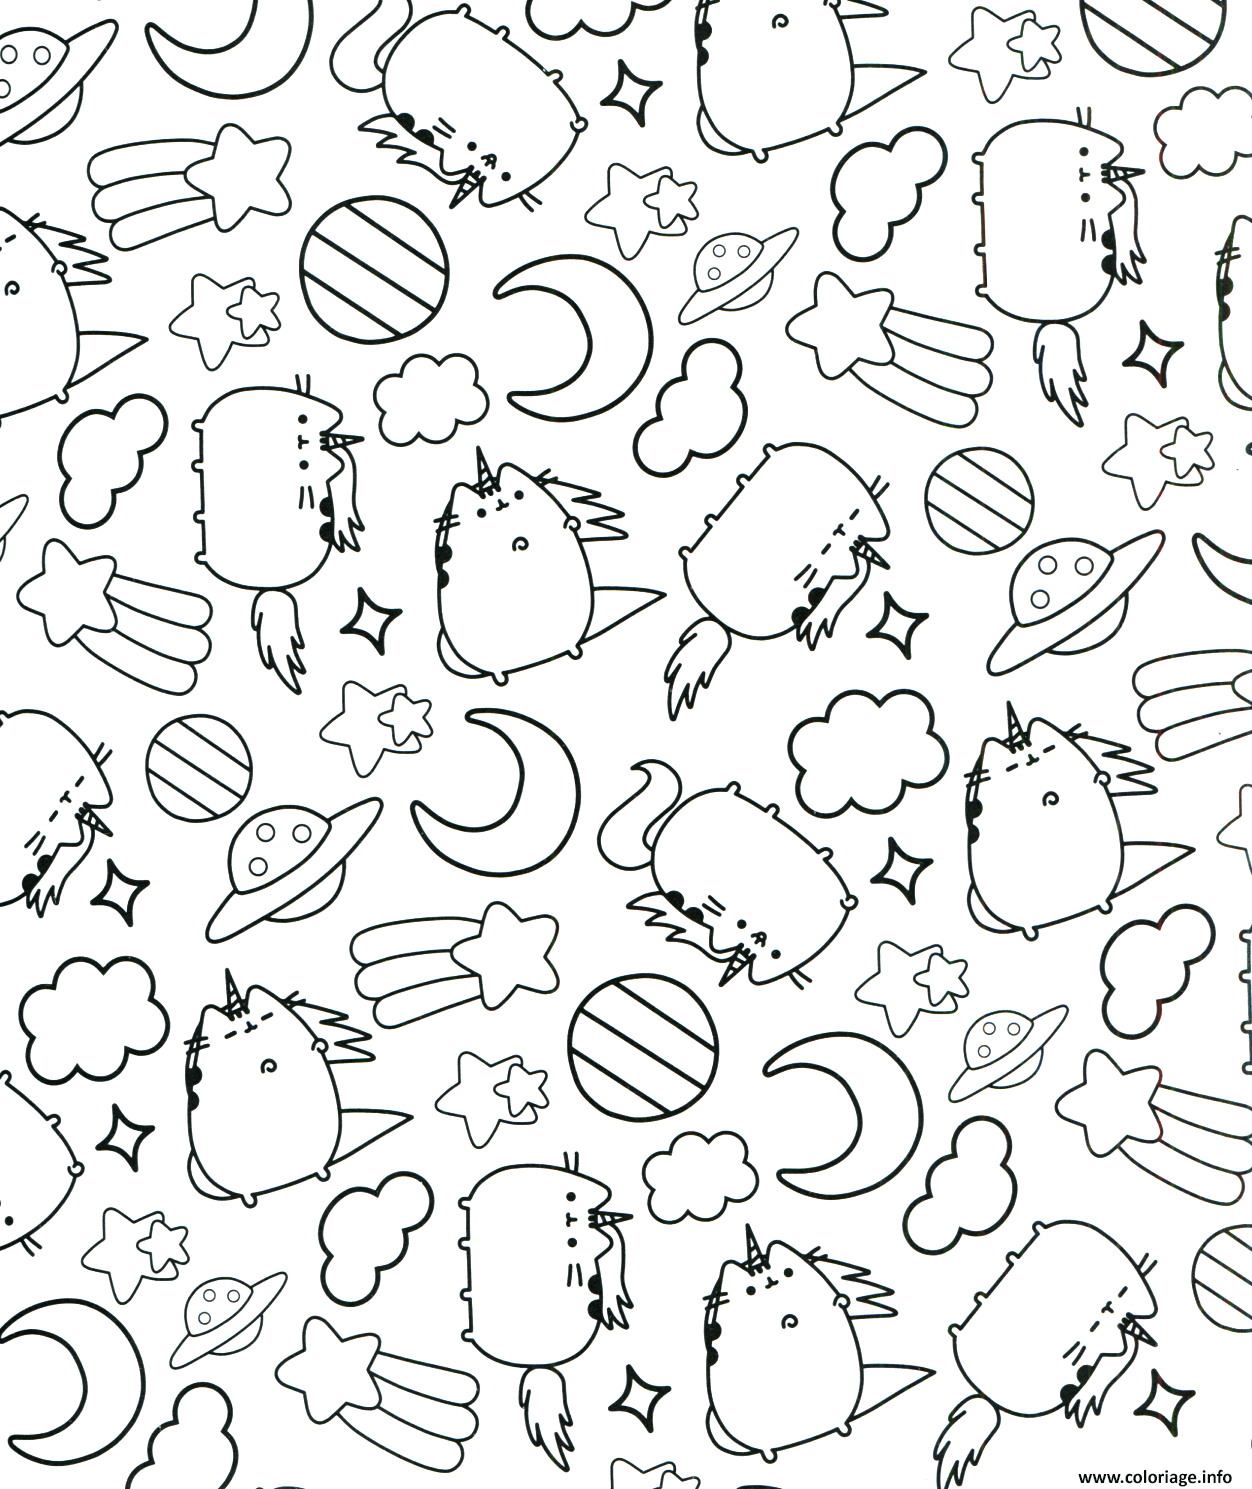 Coloriage Pusheen The Cat Sleep Pattern Dessin à Imprimer